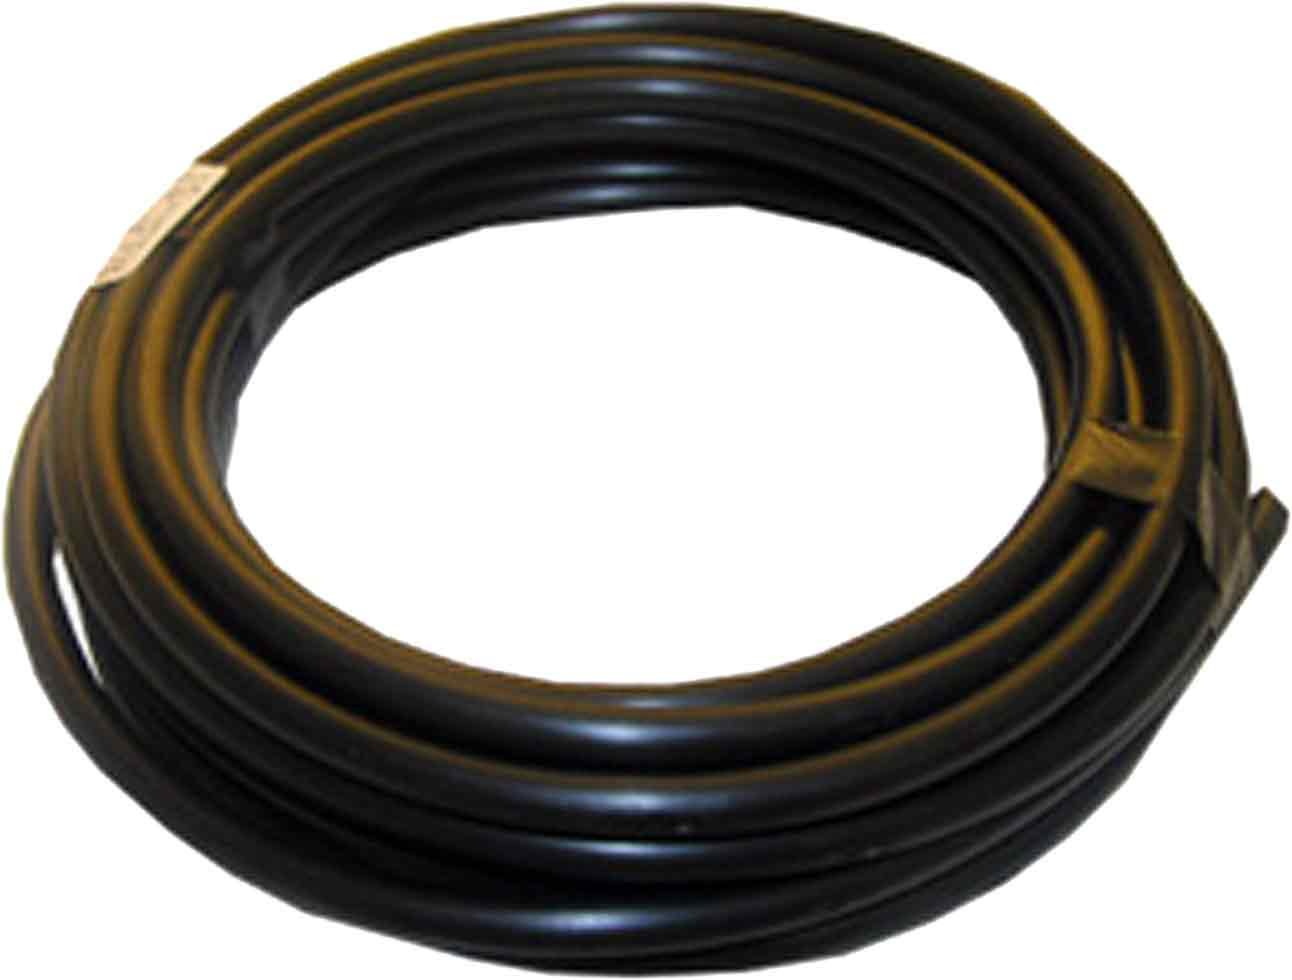 LASCO 15-5718 Soaker Drip Tubing with 6-Inch Outlet Spacing, 1/4-Inch by 15-Feet